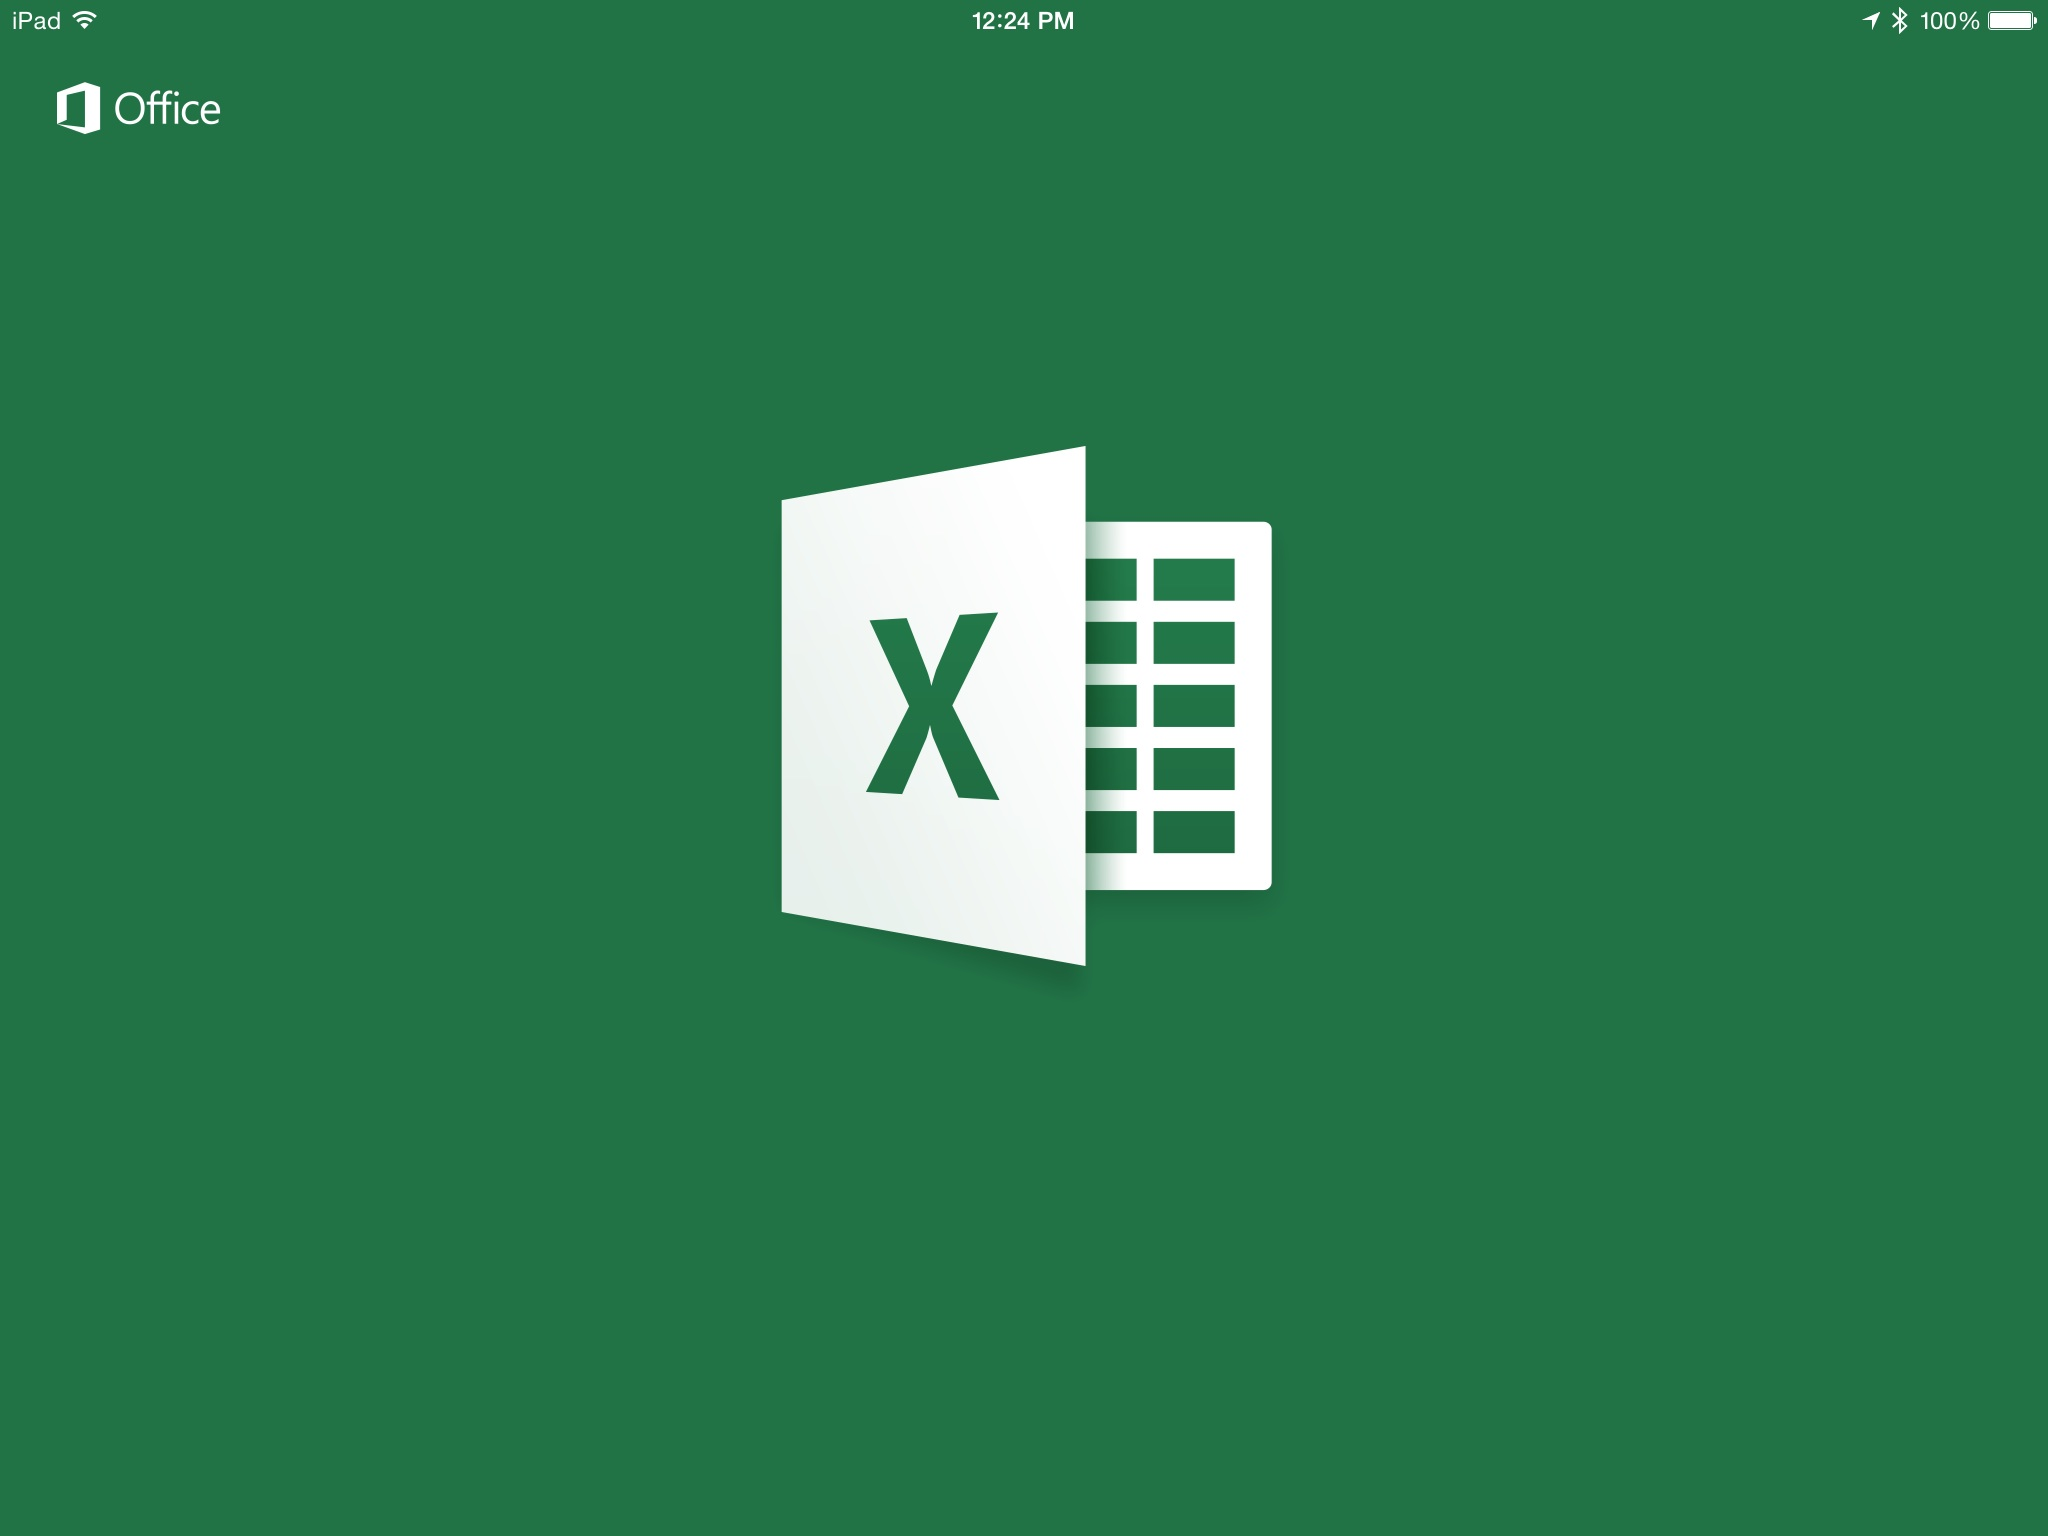 RMD:74 HD Excel Wallpapers